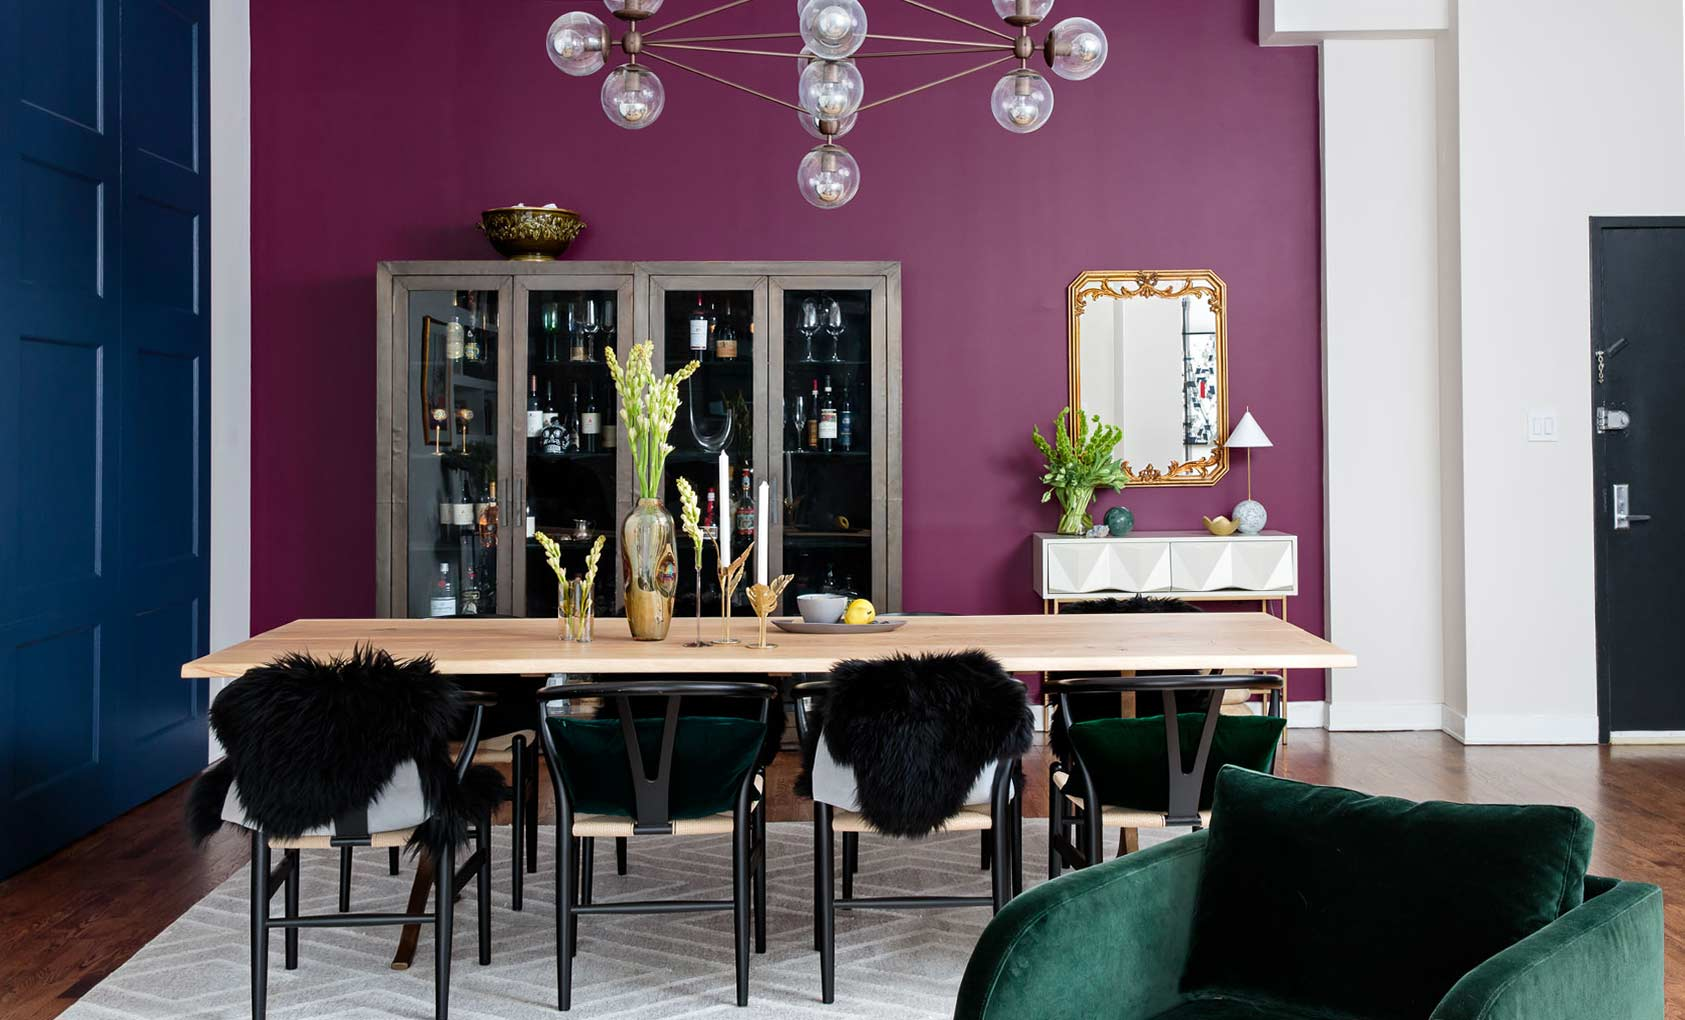 A Plush Chelsea Loft Encrusted in Jewel Tones, Design*Sponge